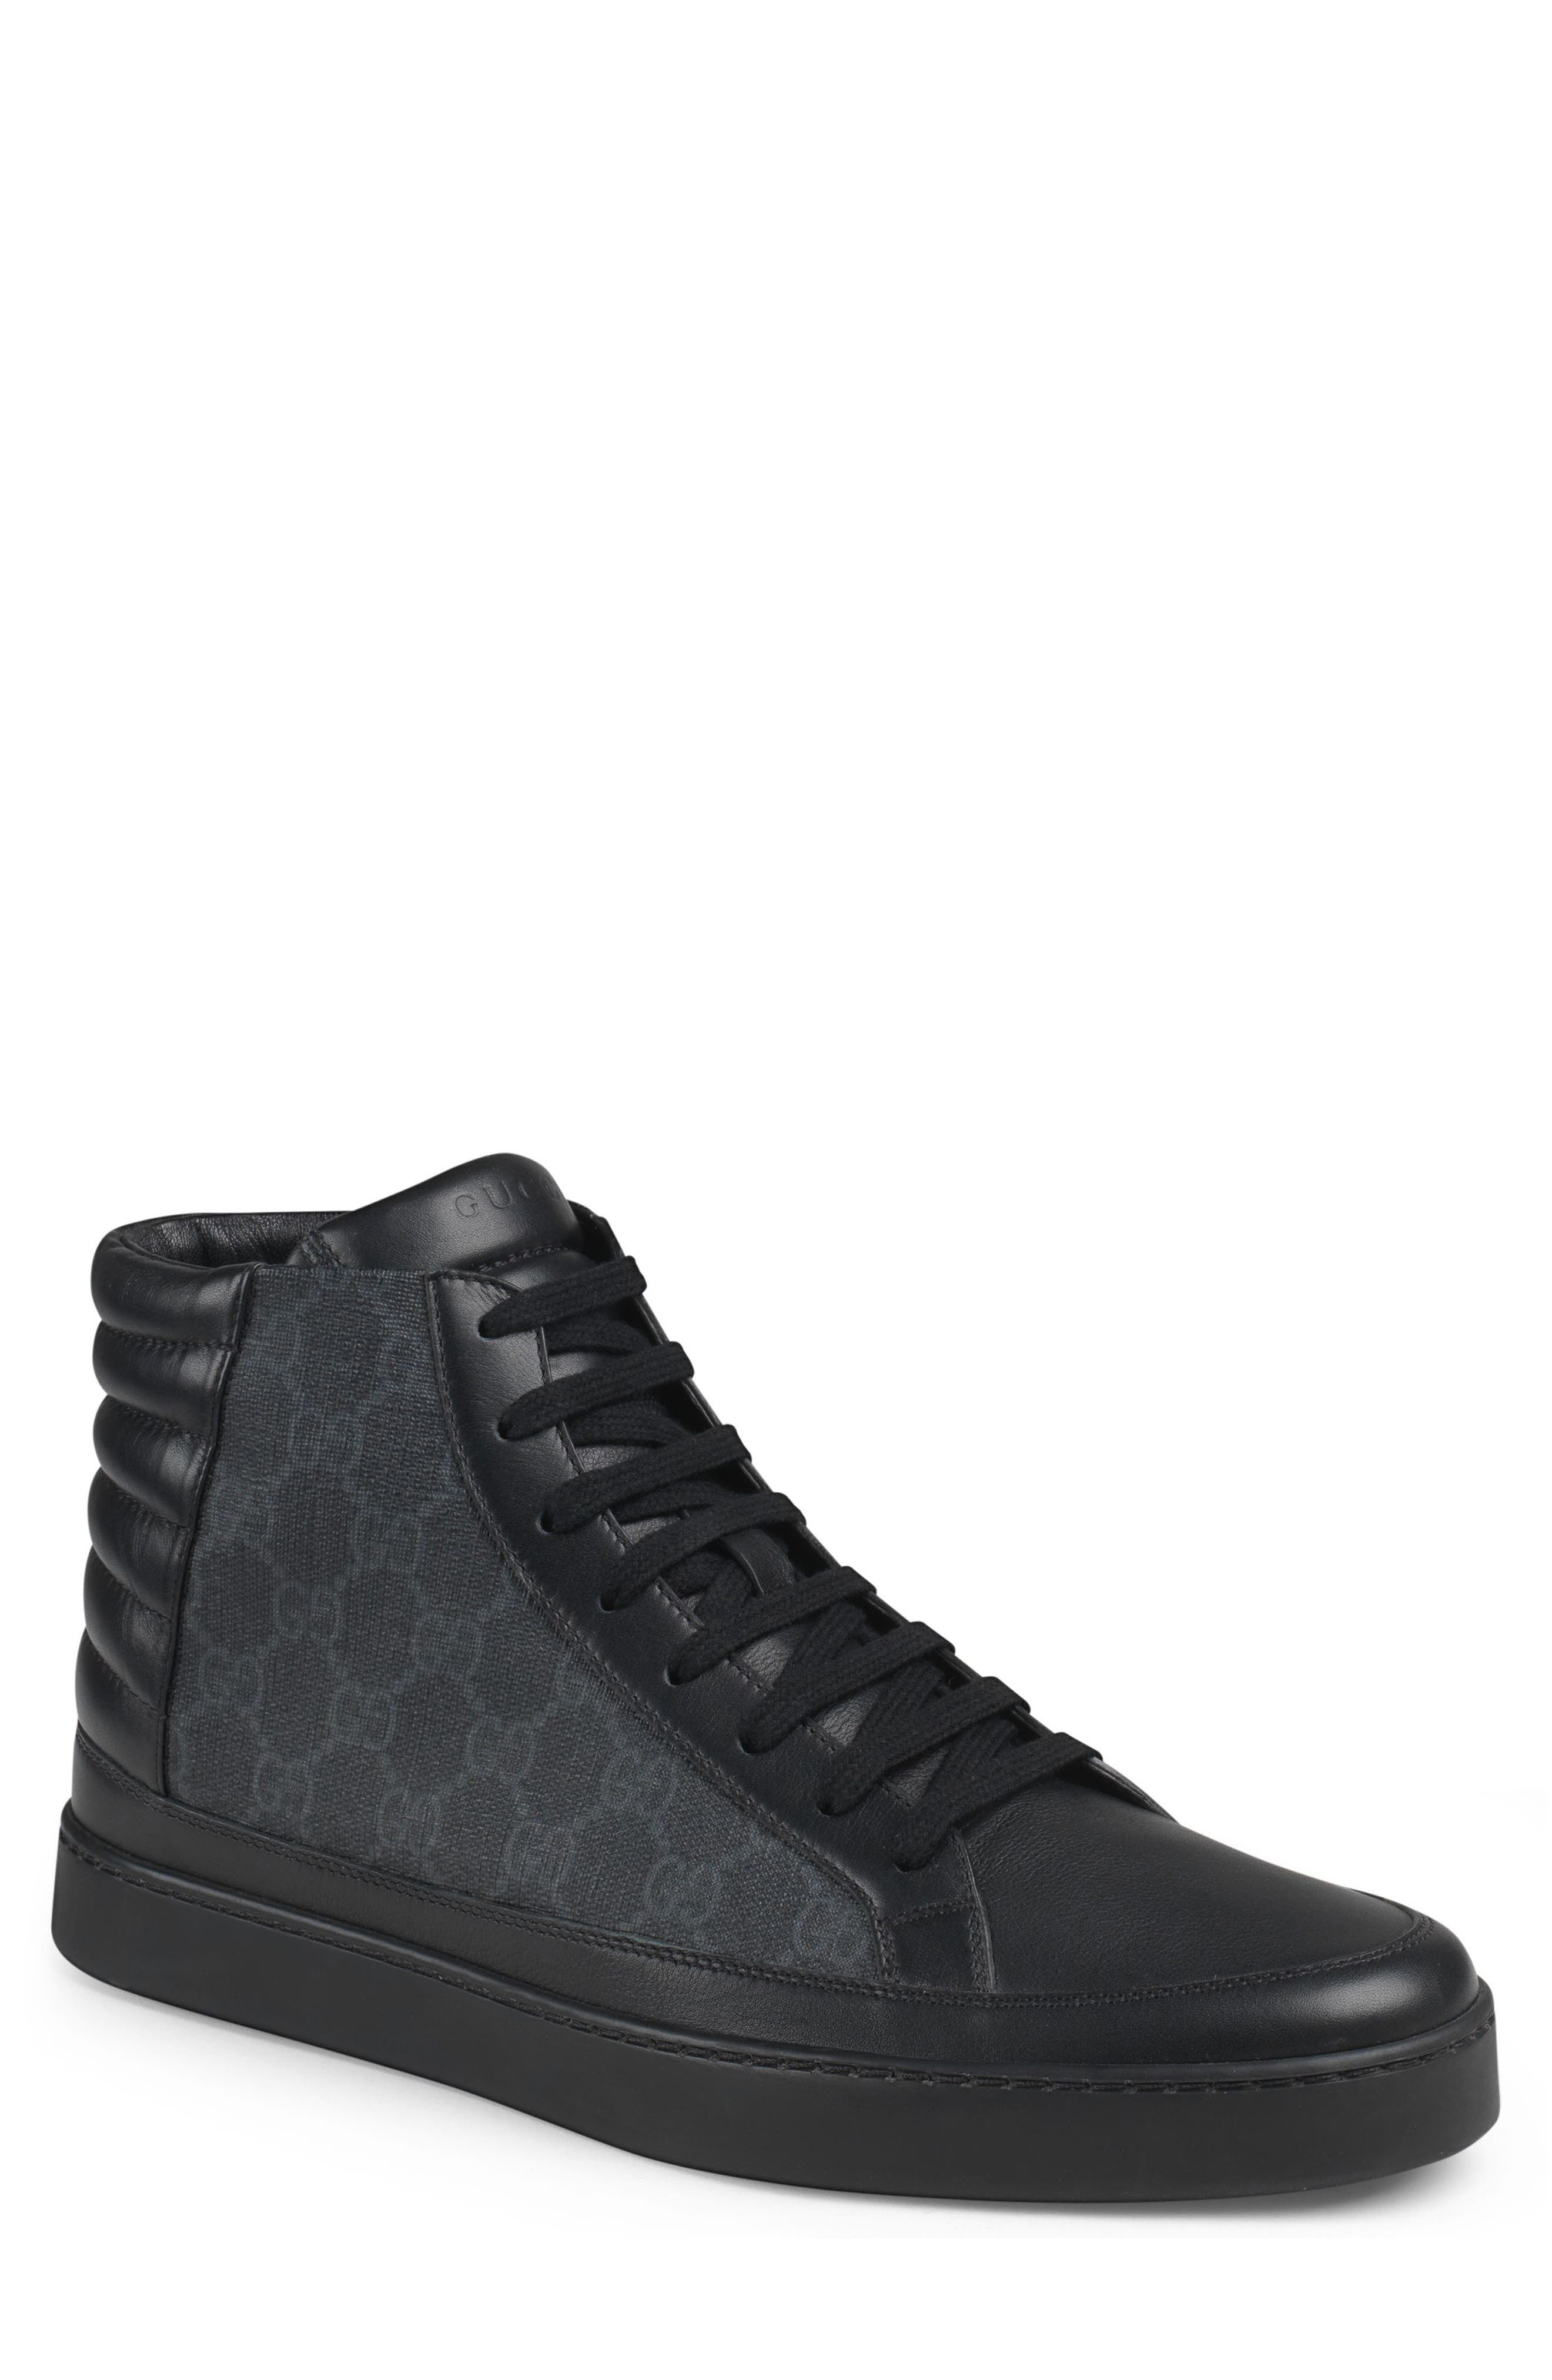 'Common' High Top Sneaker,                         Main,                         color, Nero Leather